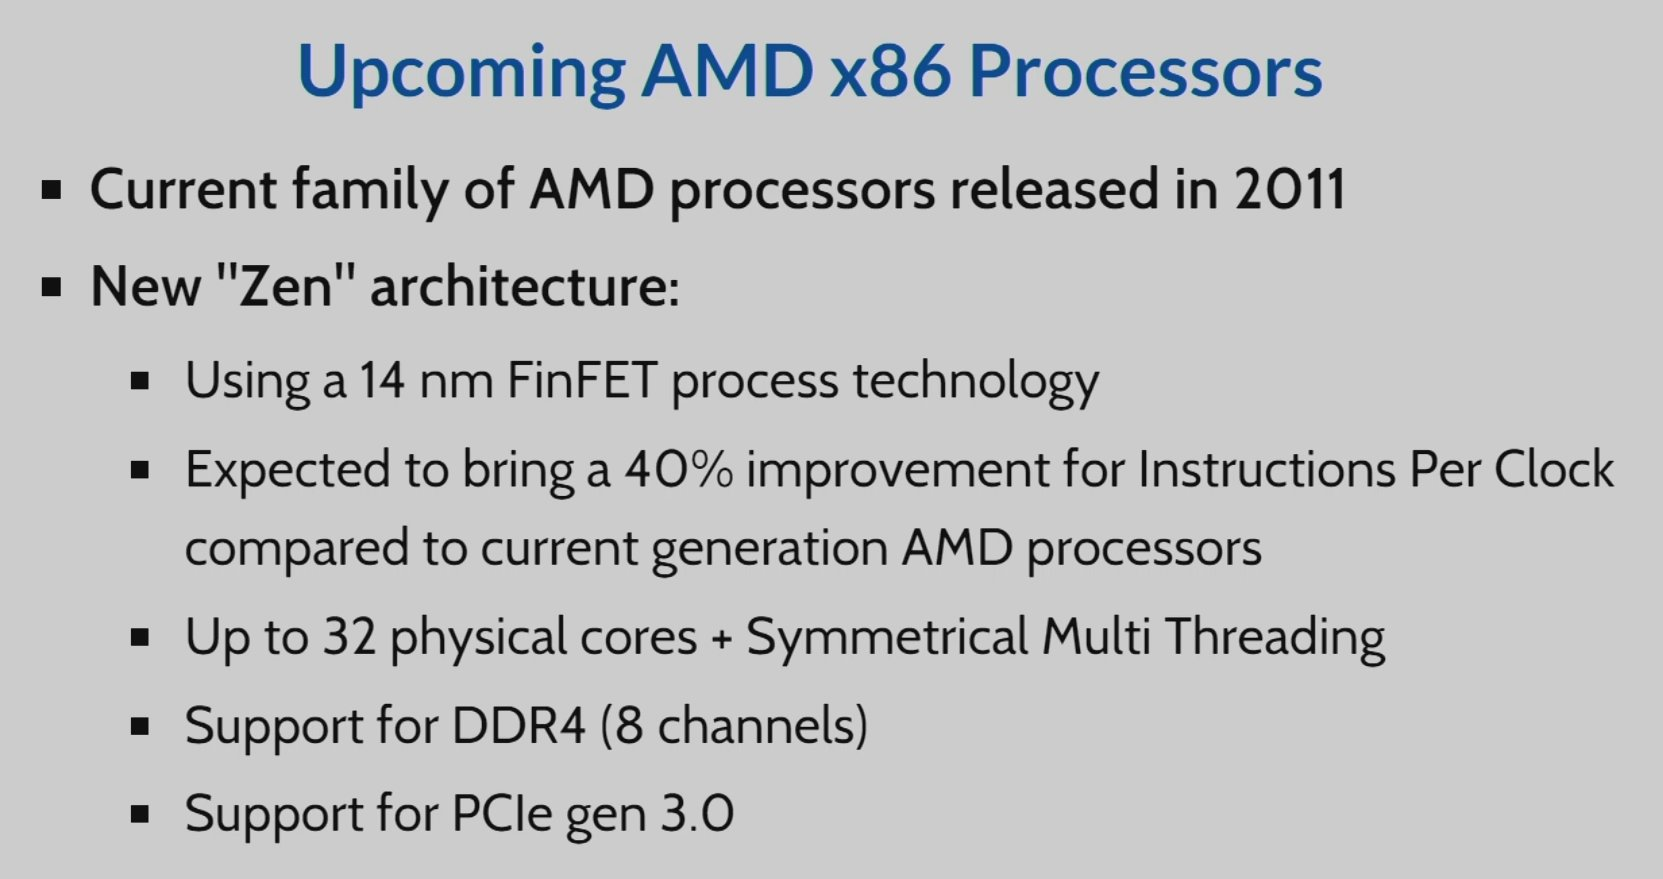 CERN is considering AMD's upcoming ZEN-based server processors for their computing needs.